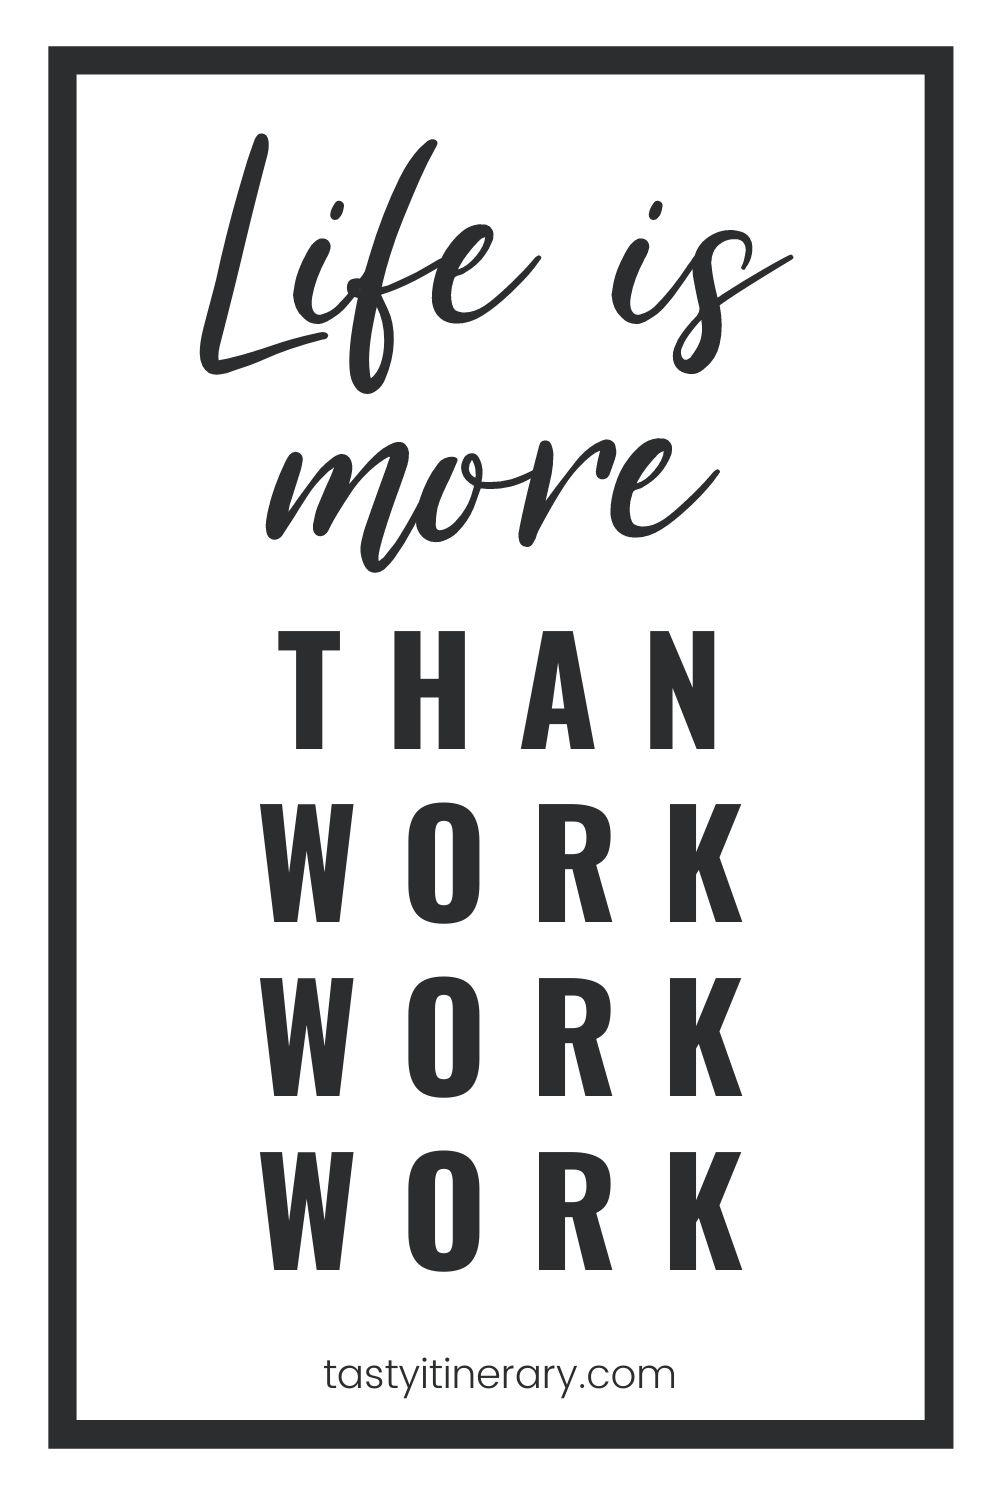 there is more to life than work | pinterest marketing image